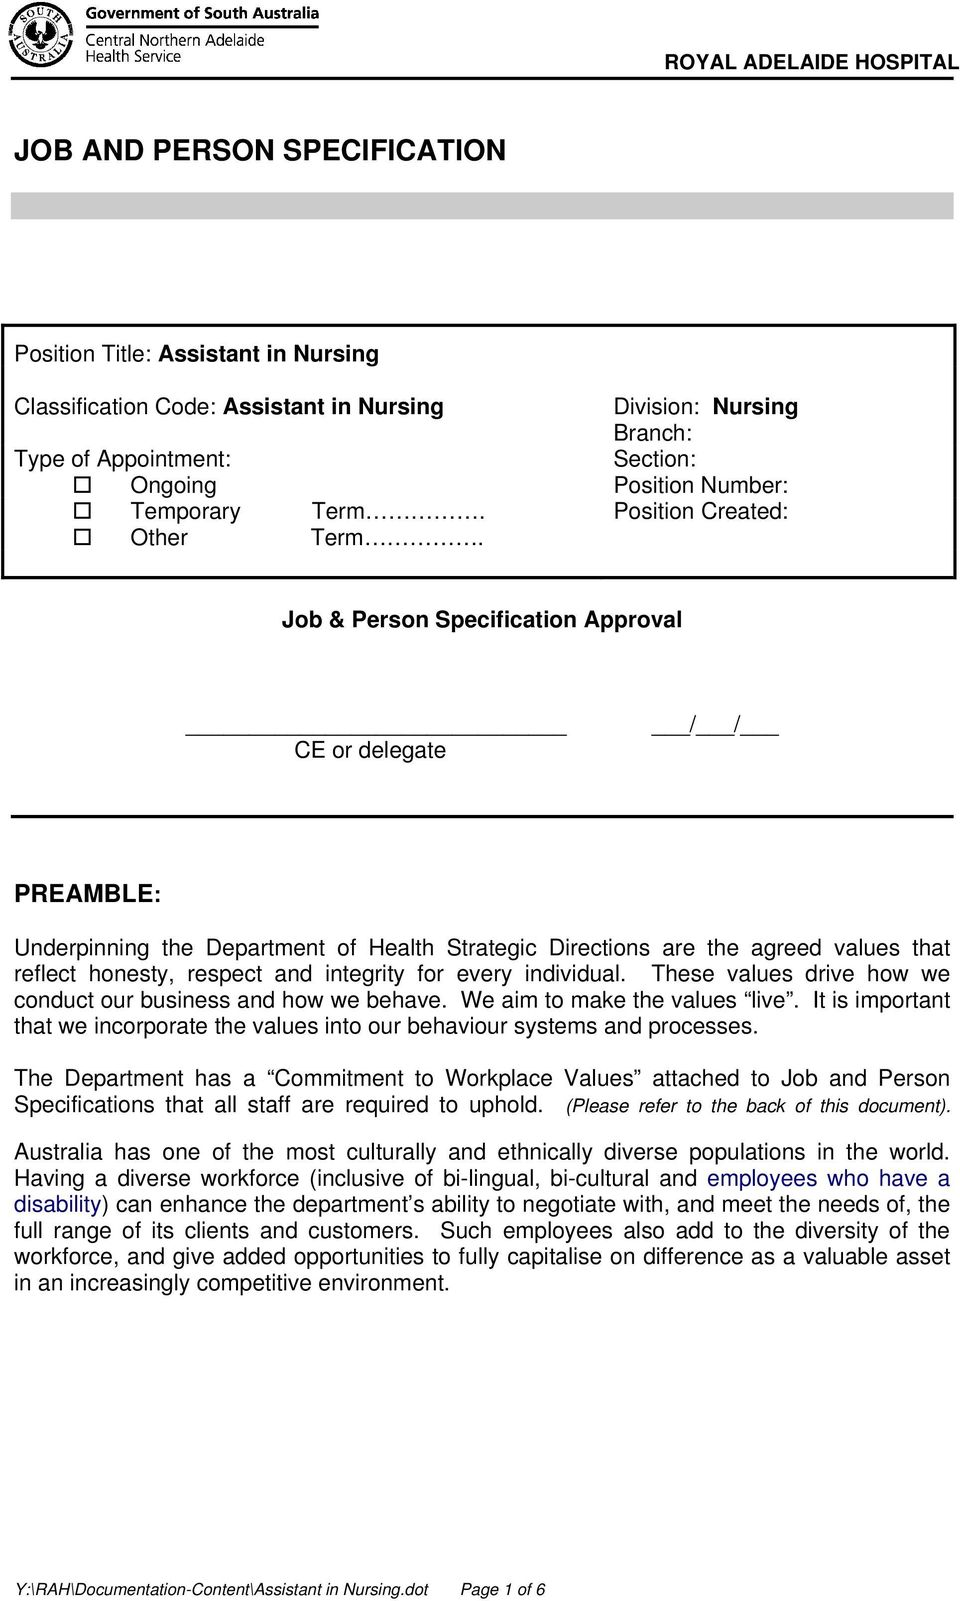 Job & Person Specification Approval CE or delegate / / PREAMBLE: Underpinning the Department of Health Strategic Directions are the agreed values that reflect honesty, respect and integrity for every